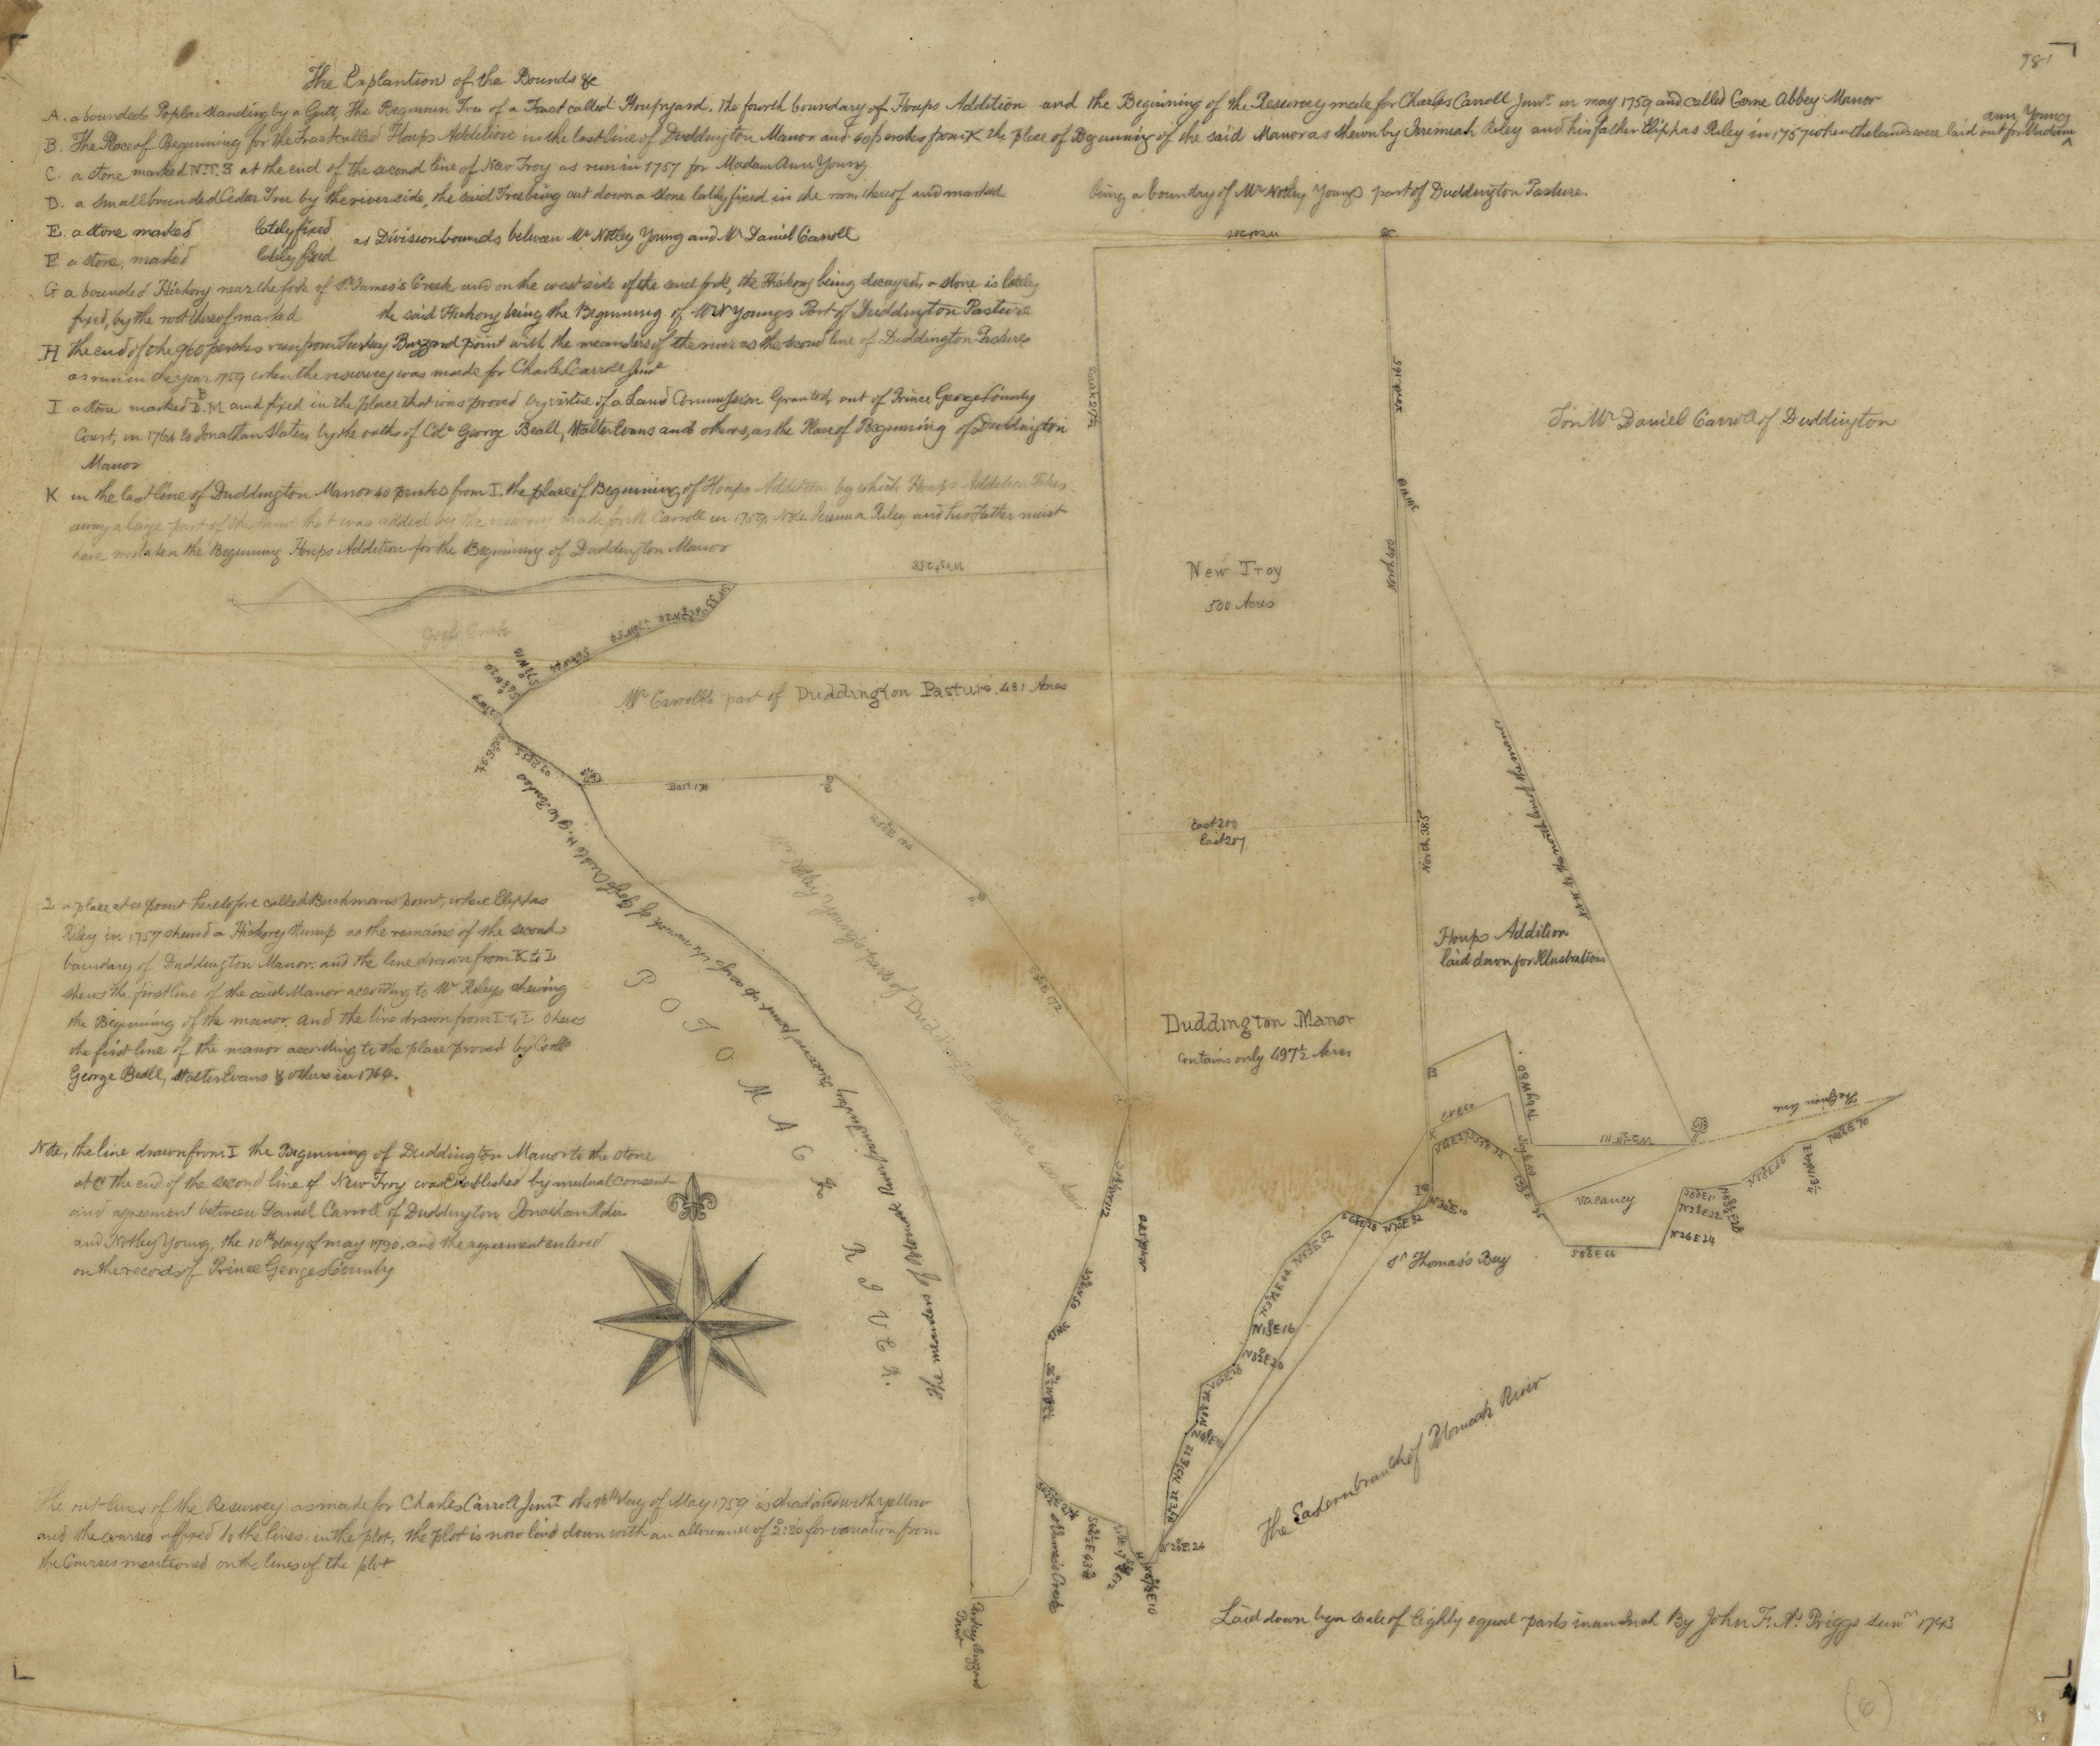 File:Cadastral survey map of Charles Carroll Jr 's land in